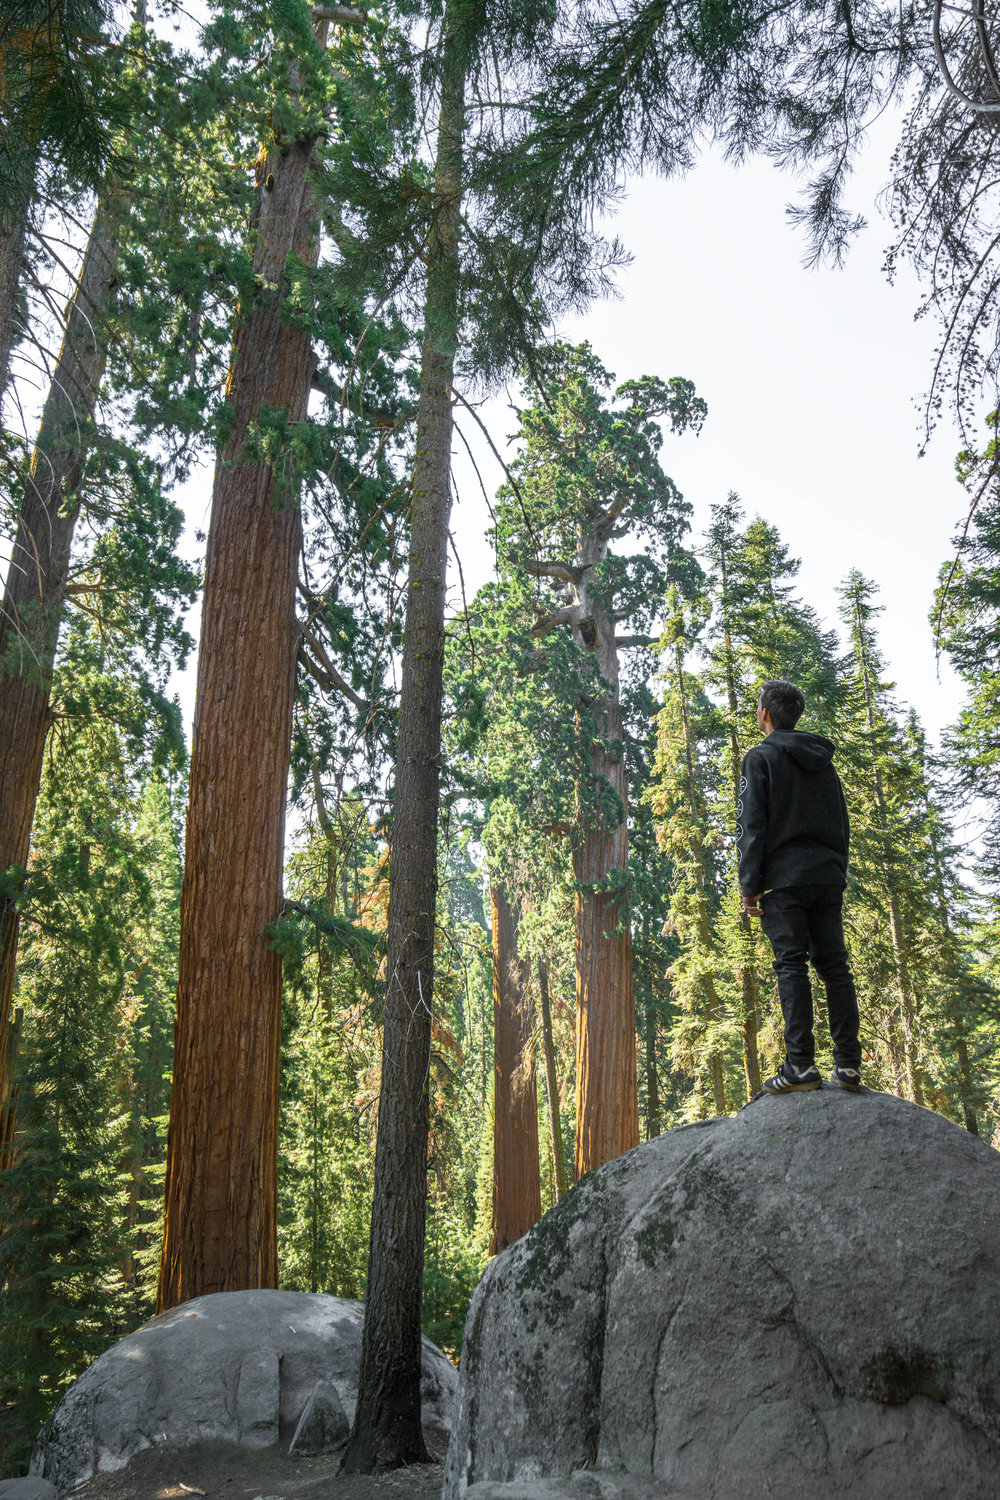 For a final short hike, we head to the towering 2,000 year old giant trees in Grant Grove.